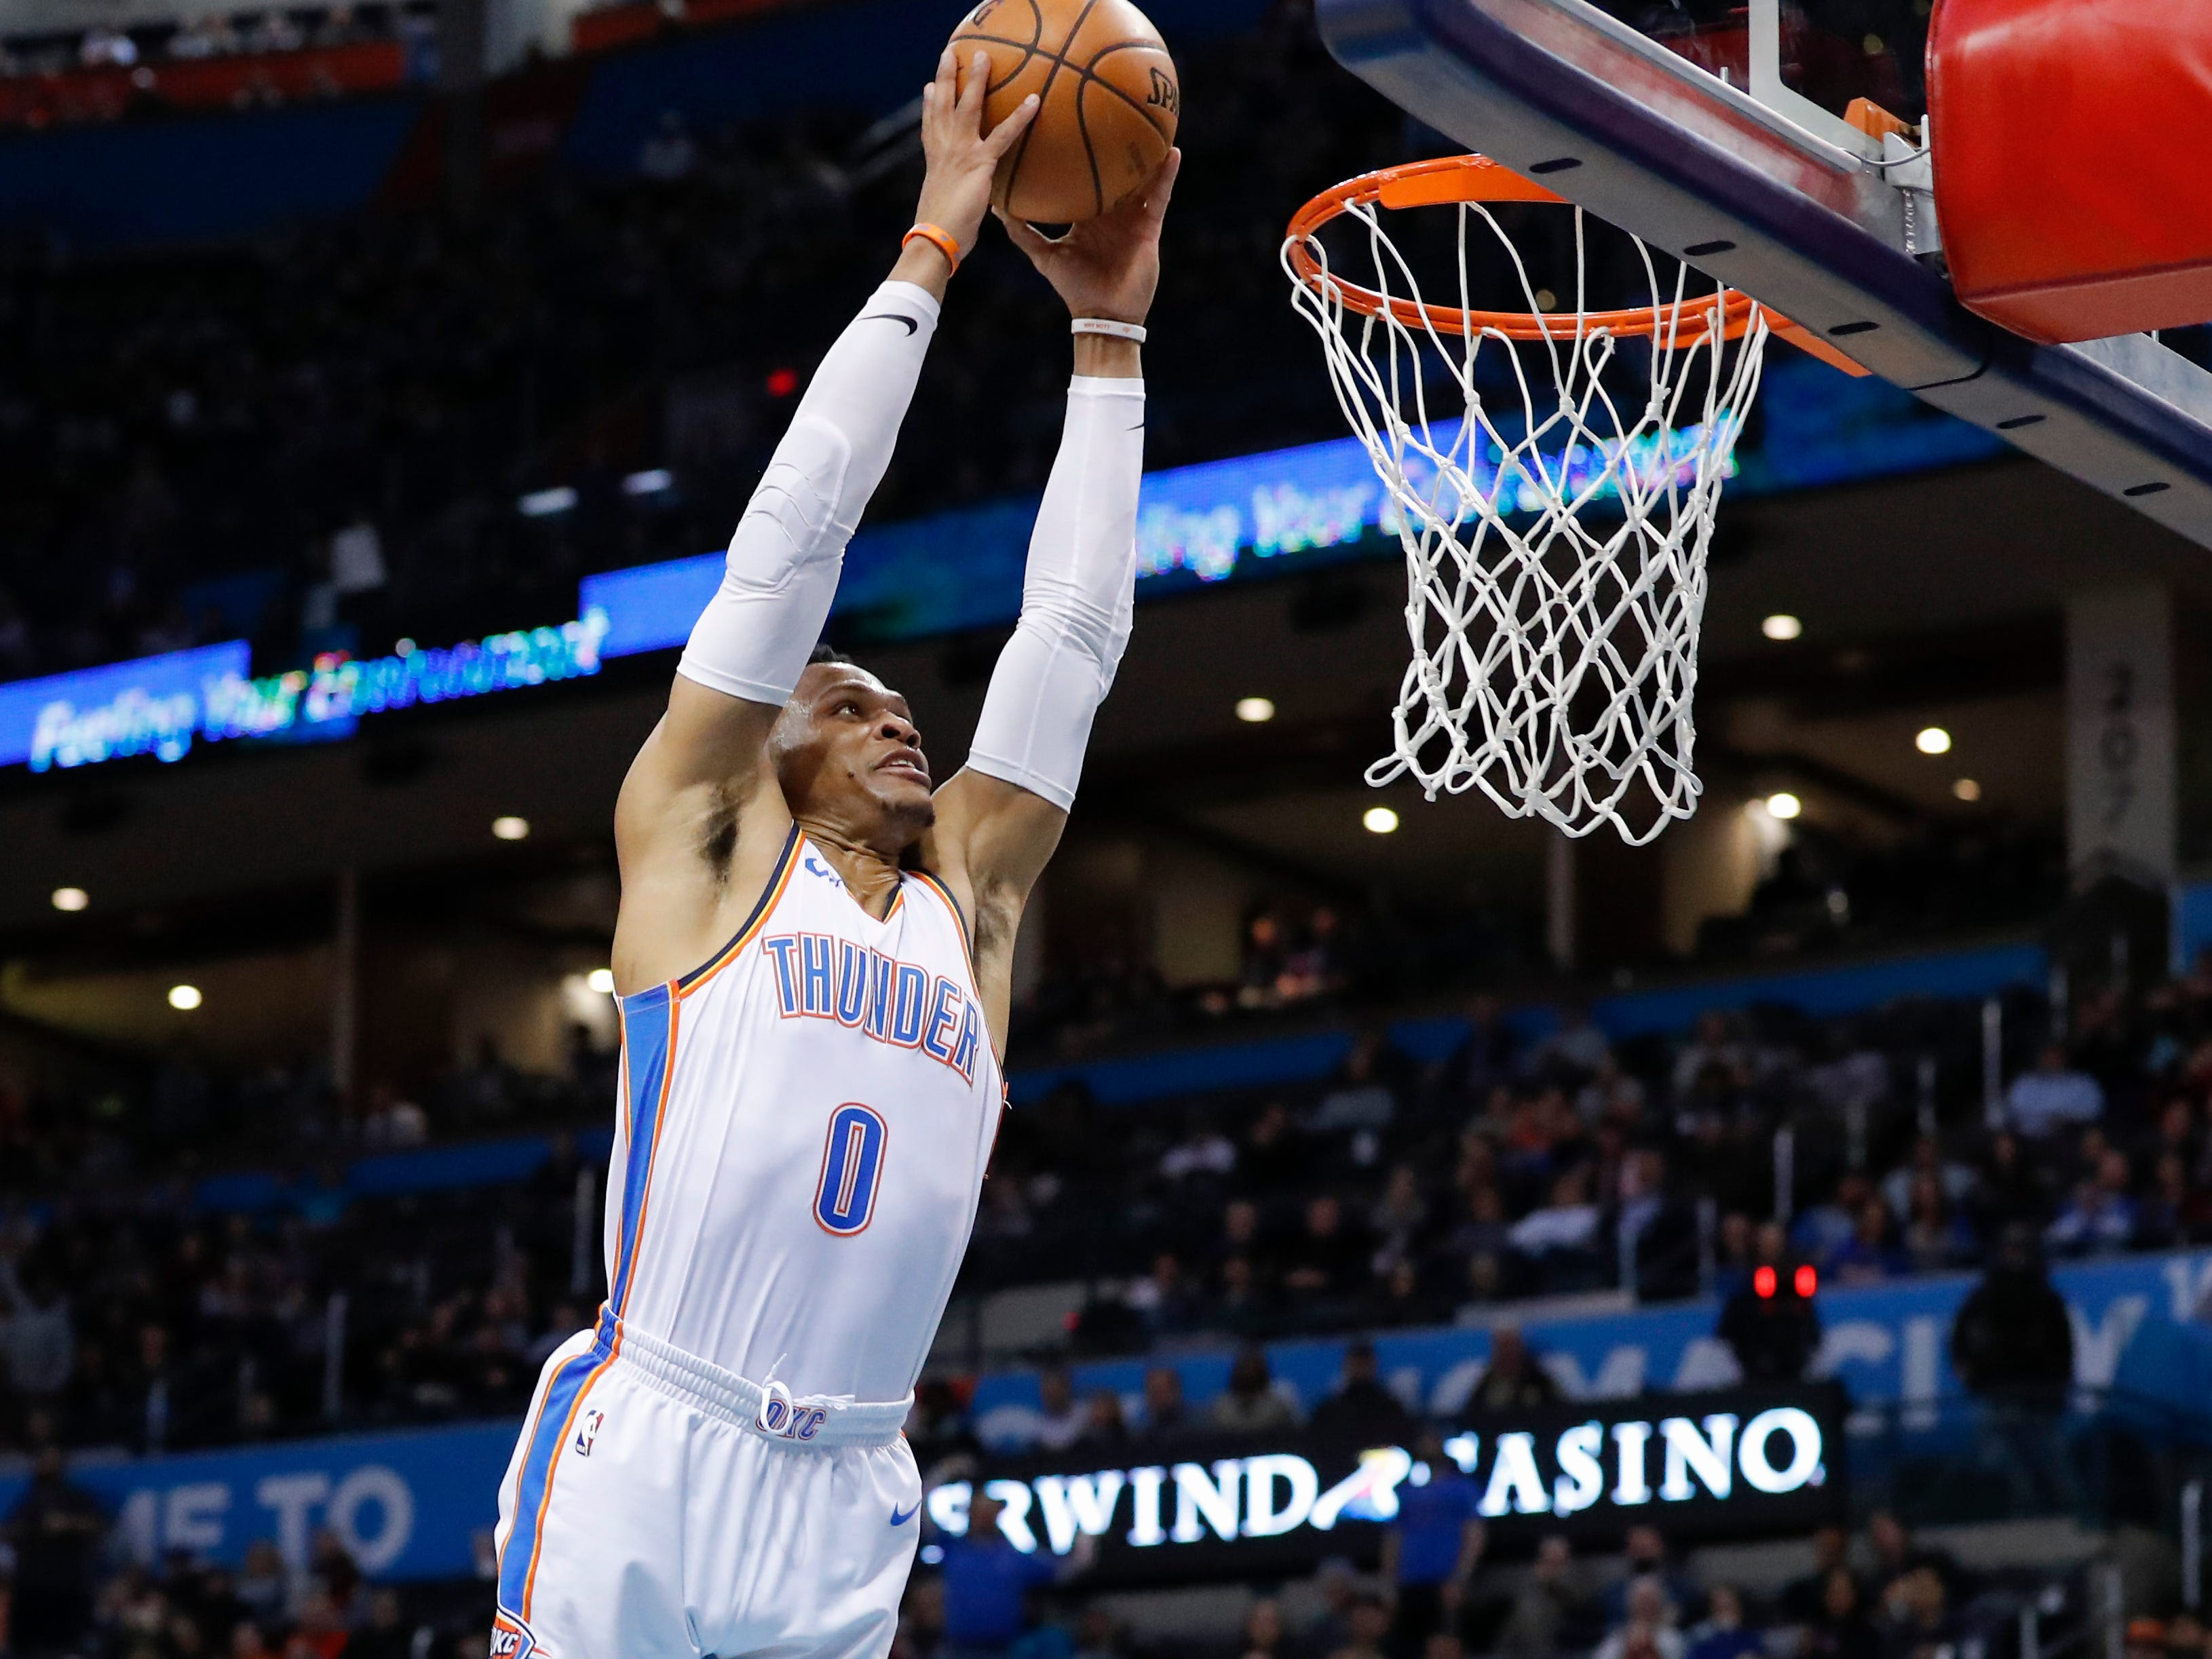 77. Russell Westbrook (Feb. 7):15 points, 13 rebounds, 15 assists in 117-95 win over Grizzlies (21st of season).